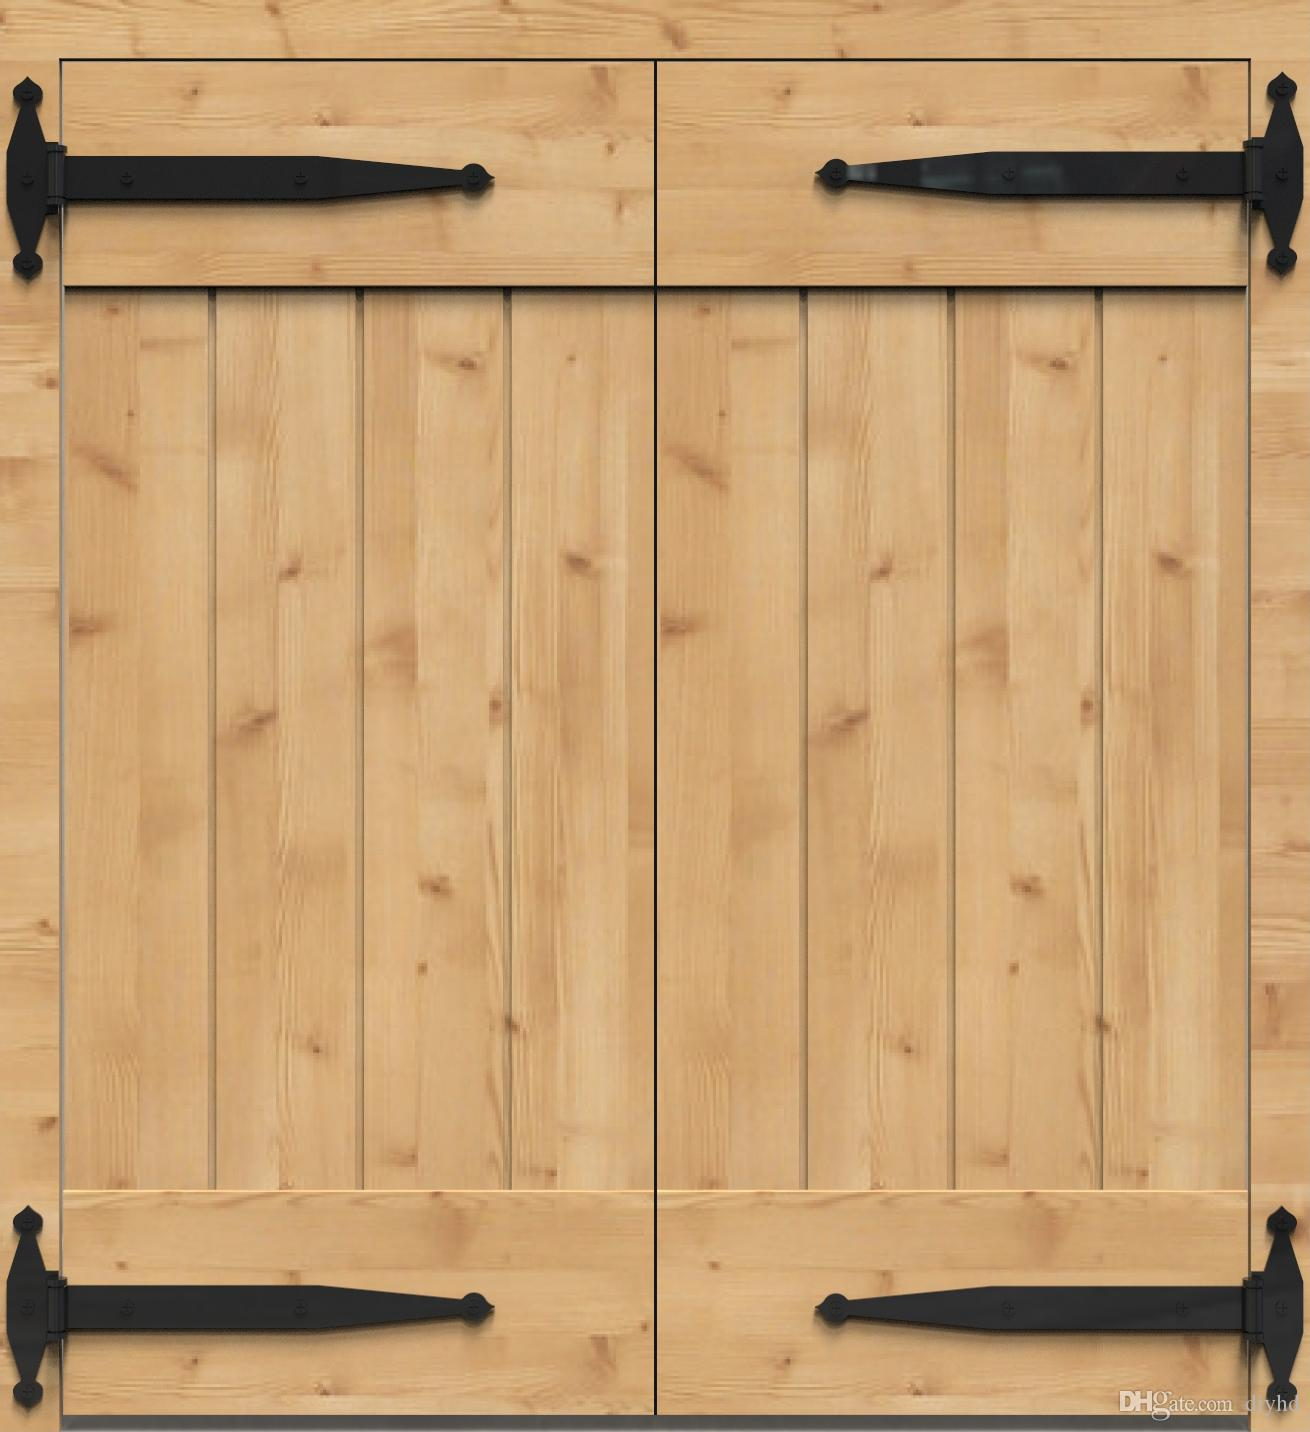 21 Antique Black Barn Wood Door T Hinge Swing Door Hinge T Hinge Barn Door  Hinge Door Hinge Online with $76.51/Piece on Diyhd's Store | DHgate.com - 21 Antique Black Barn Wood Door T Hinge Swing Door Hinge T Hinge